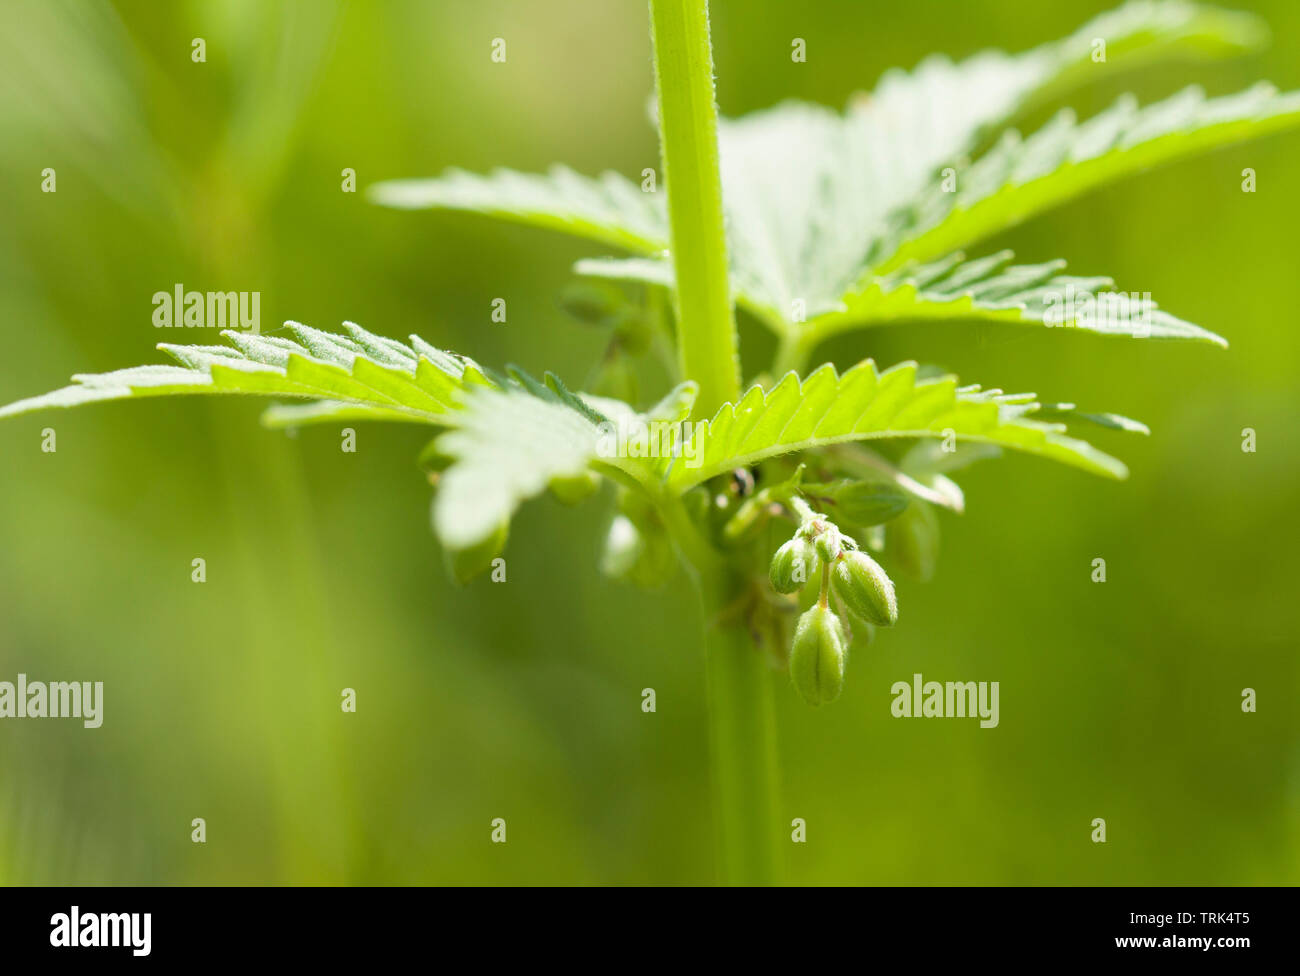 Indica And Sativa Weed Stockfotos & Indica And Sativa Weed